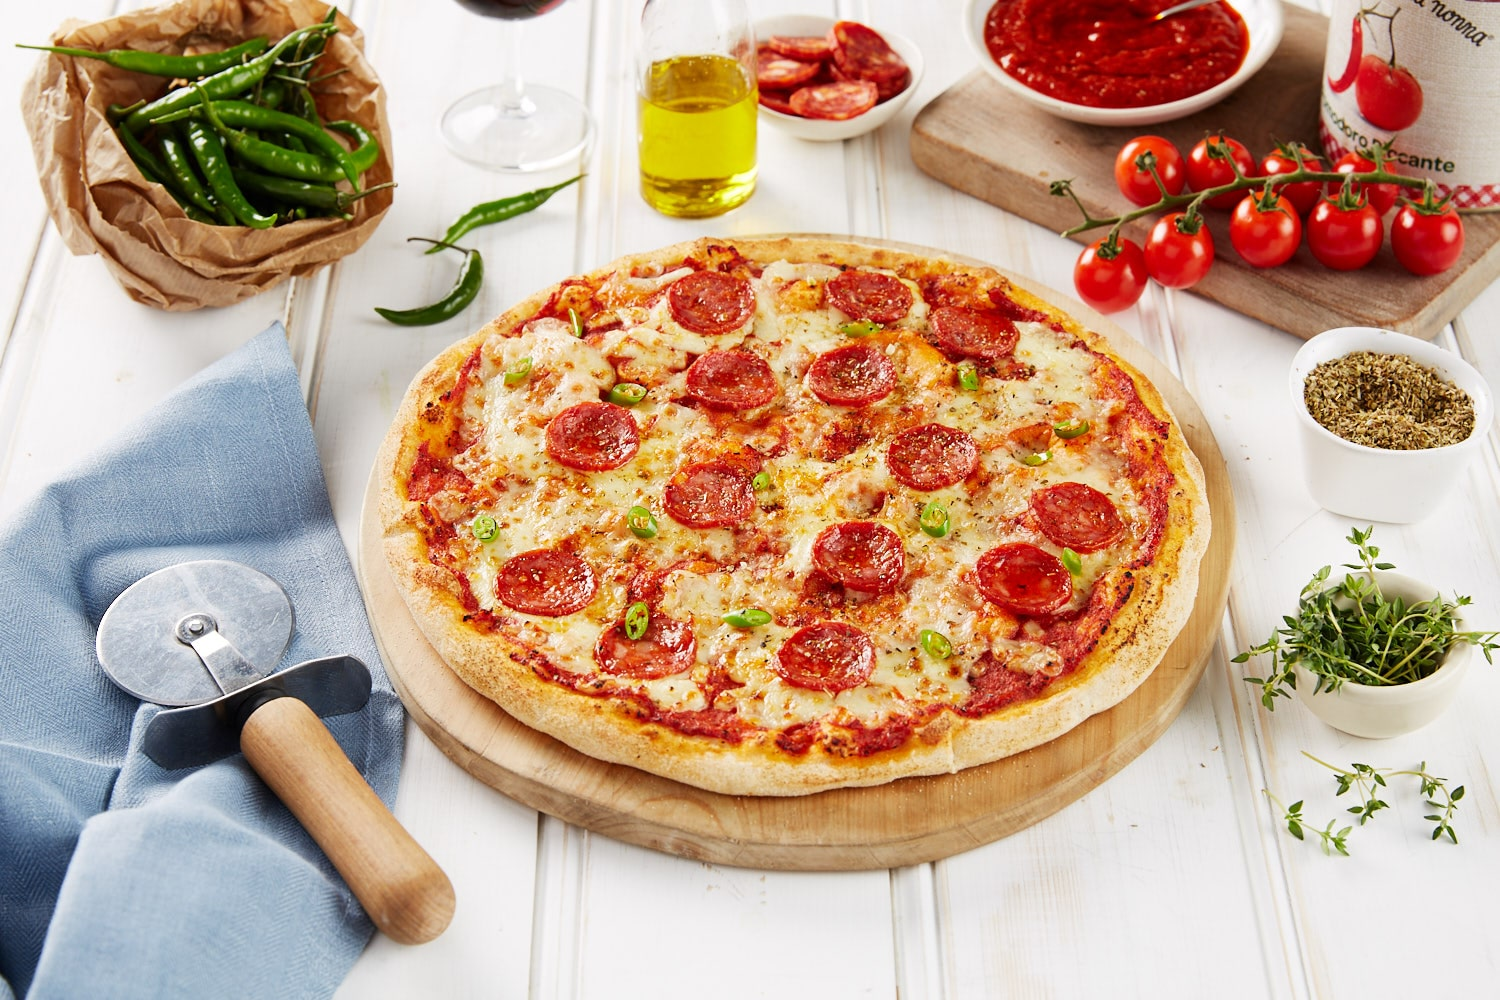 bella-italia-pepperoni-pizza-on-wooden-board-on-white-table